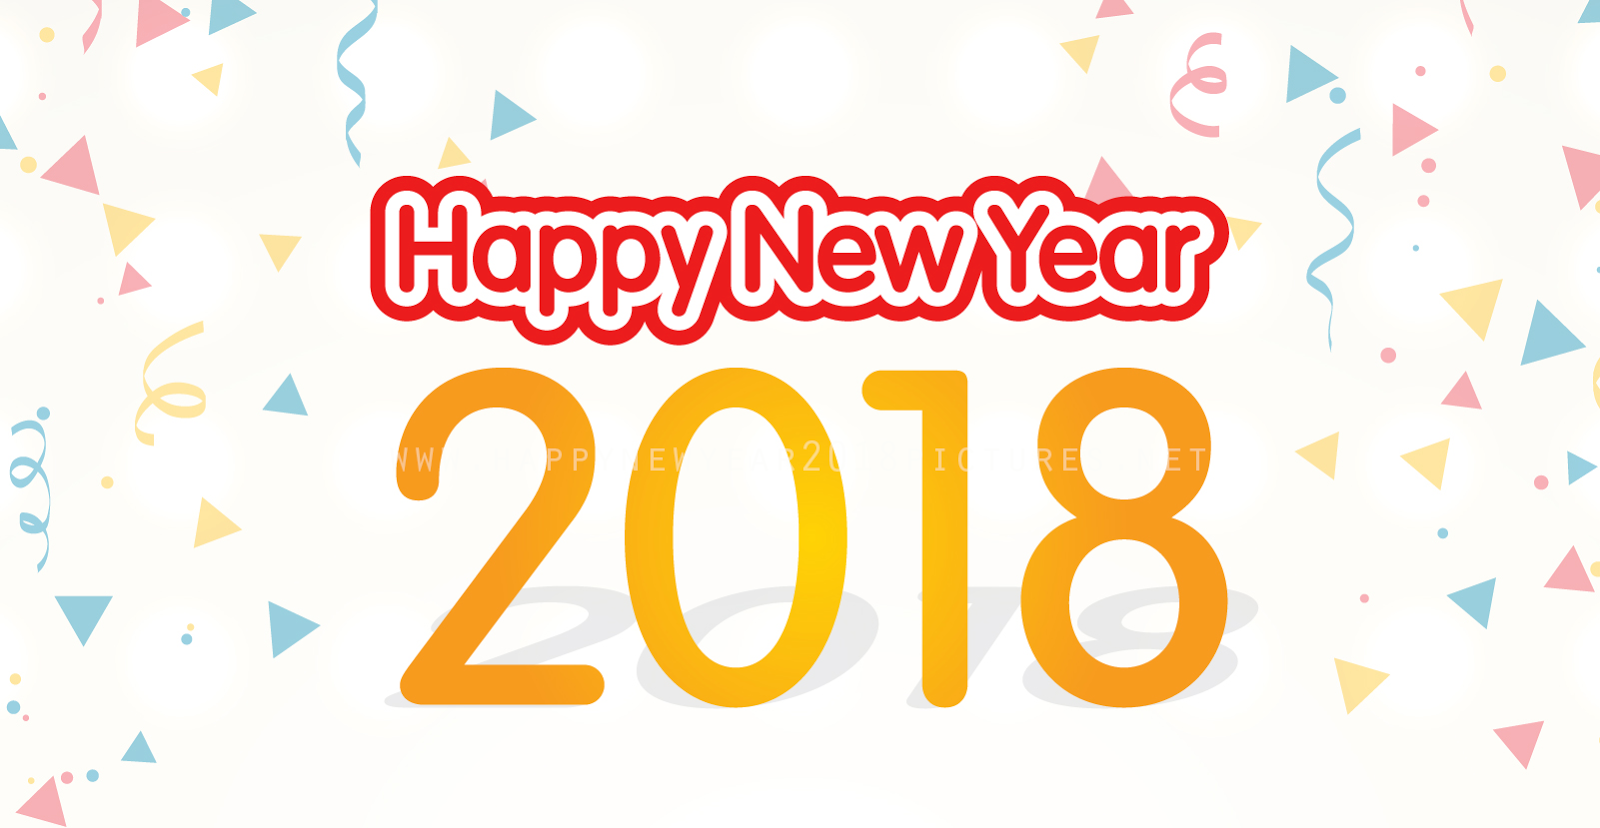 1000+ Happy New Year 2018 HD Wallpapers, Images Free Download